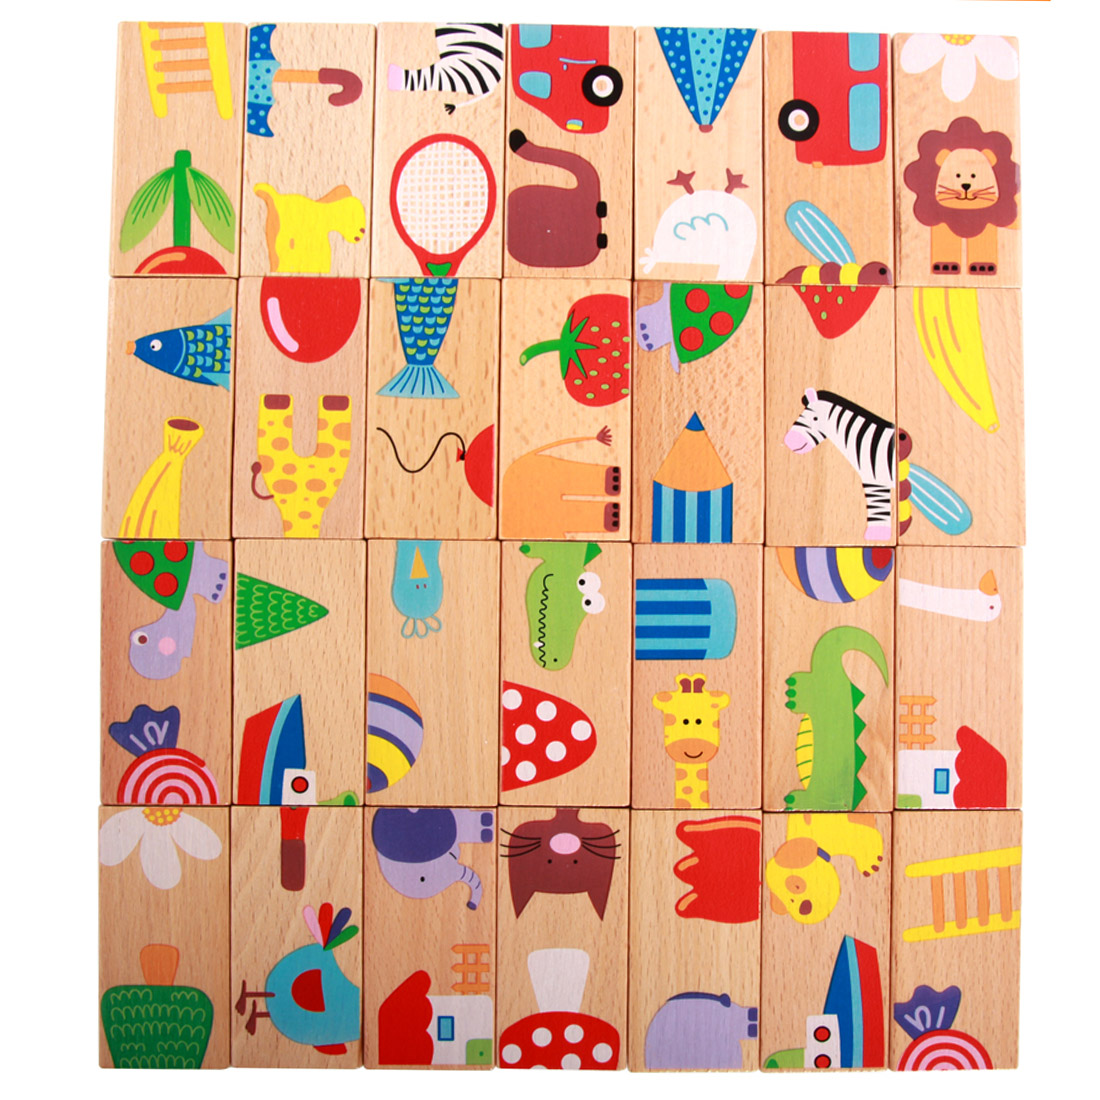 28Pcs Animal Puzzle Wooden Domino Blocks Set Board Game for Kids Play Intelligence Blocks Education Toy